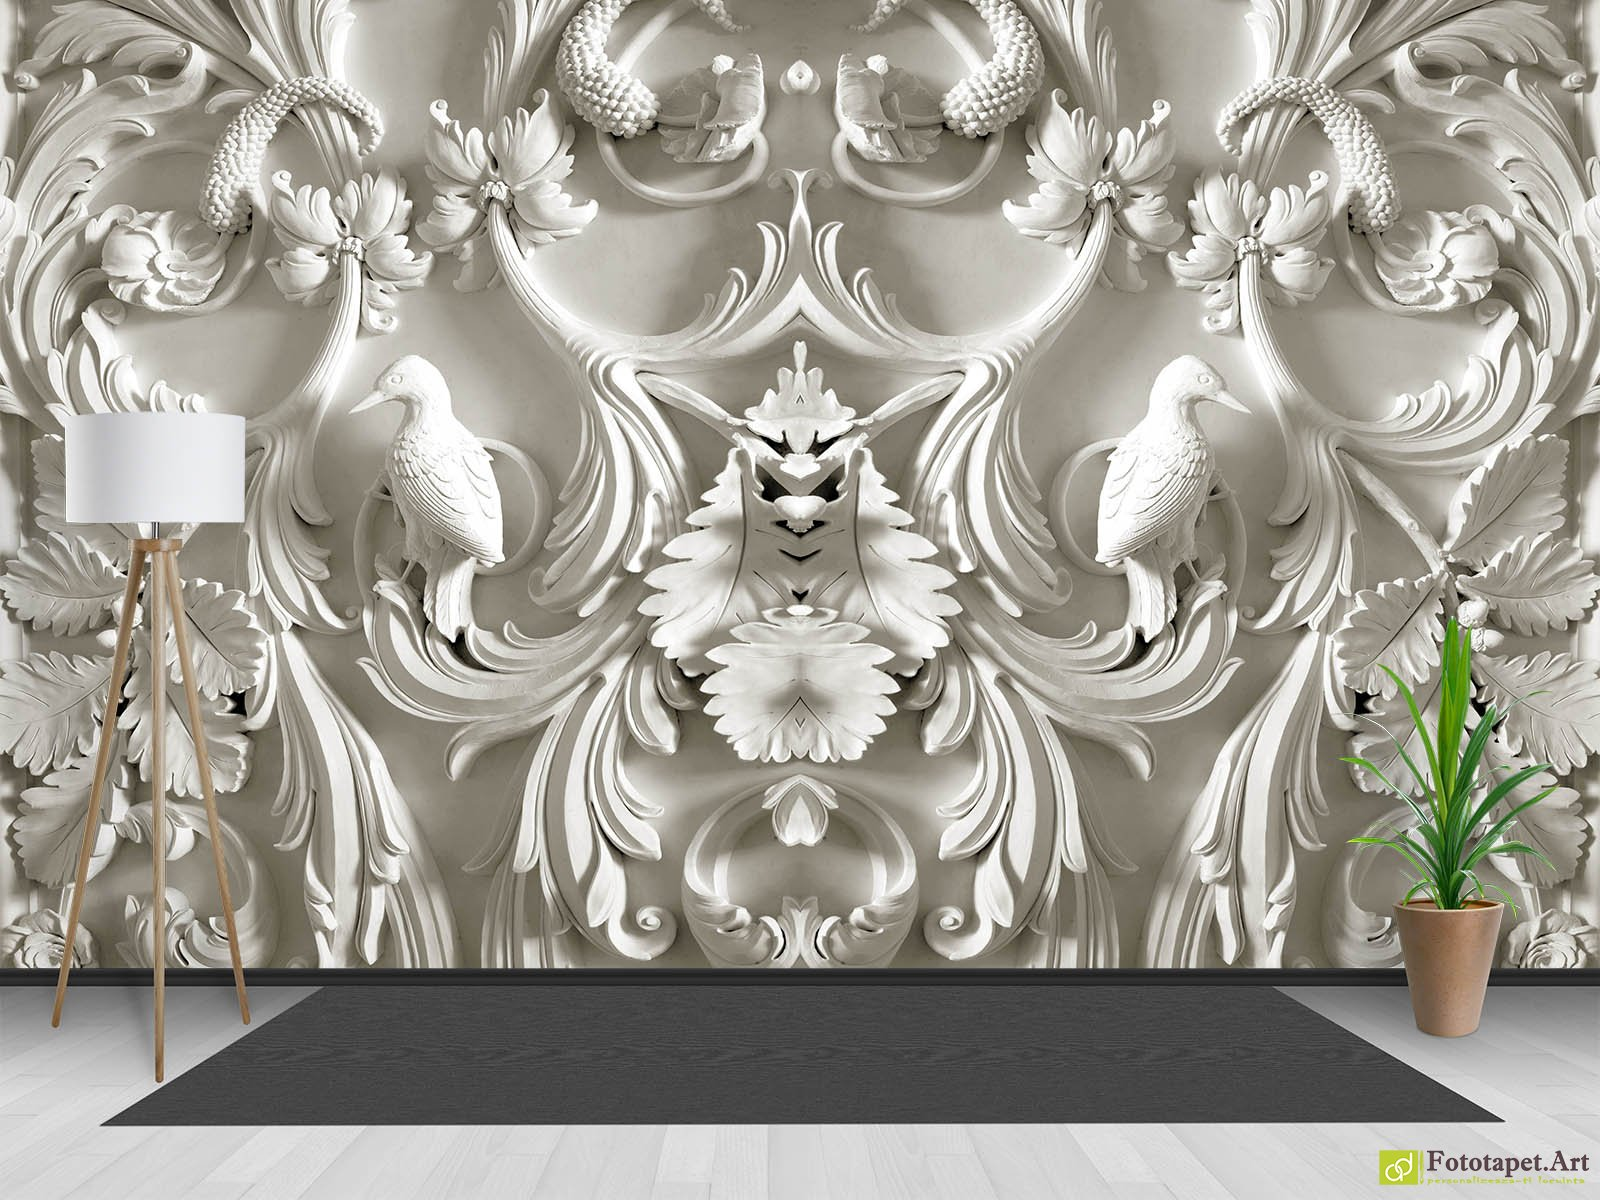 Photo Wallpaper 3DEffect   Birds of gypsum and loops   Fototapet art     Photo Wallpaper 3D Effect   Birds of gypsum and loops